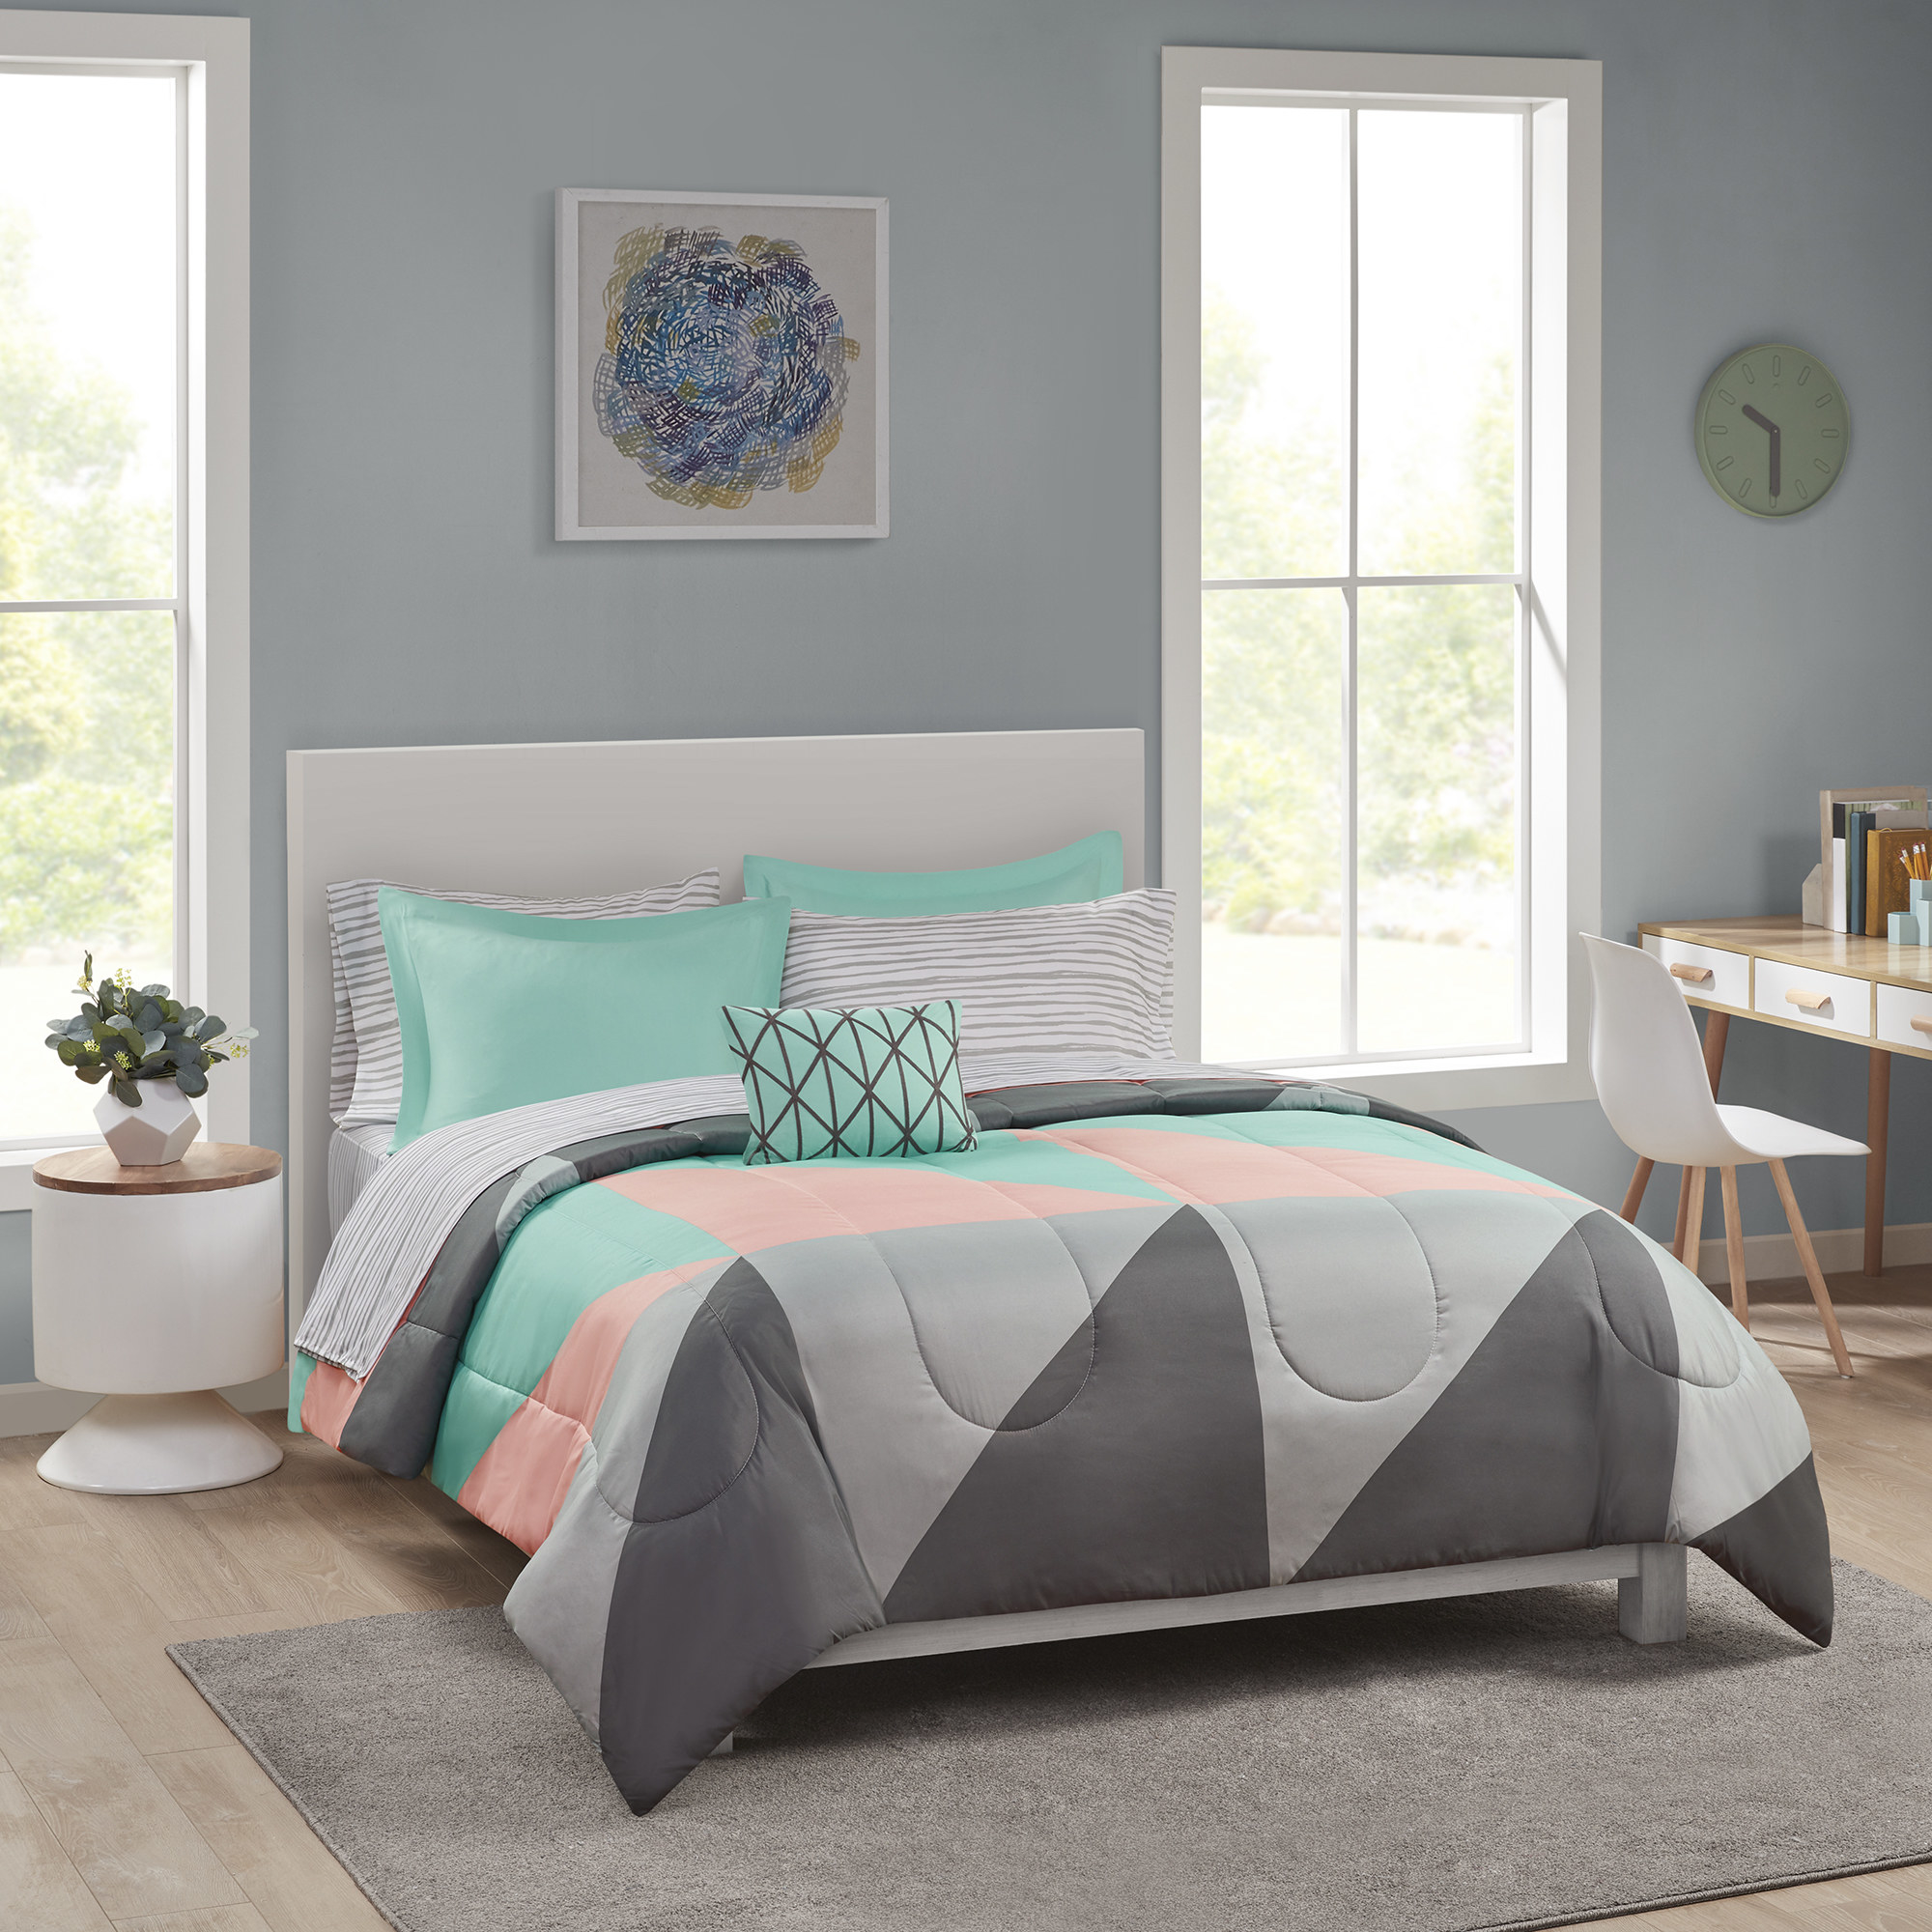 A teal, grey and pink bedroom set